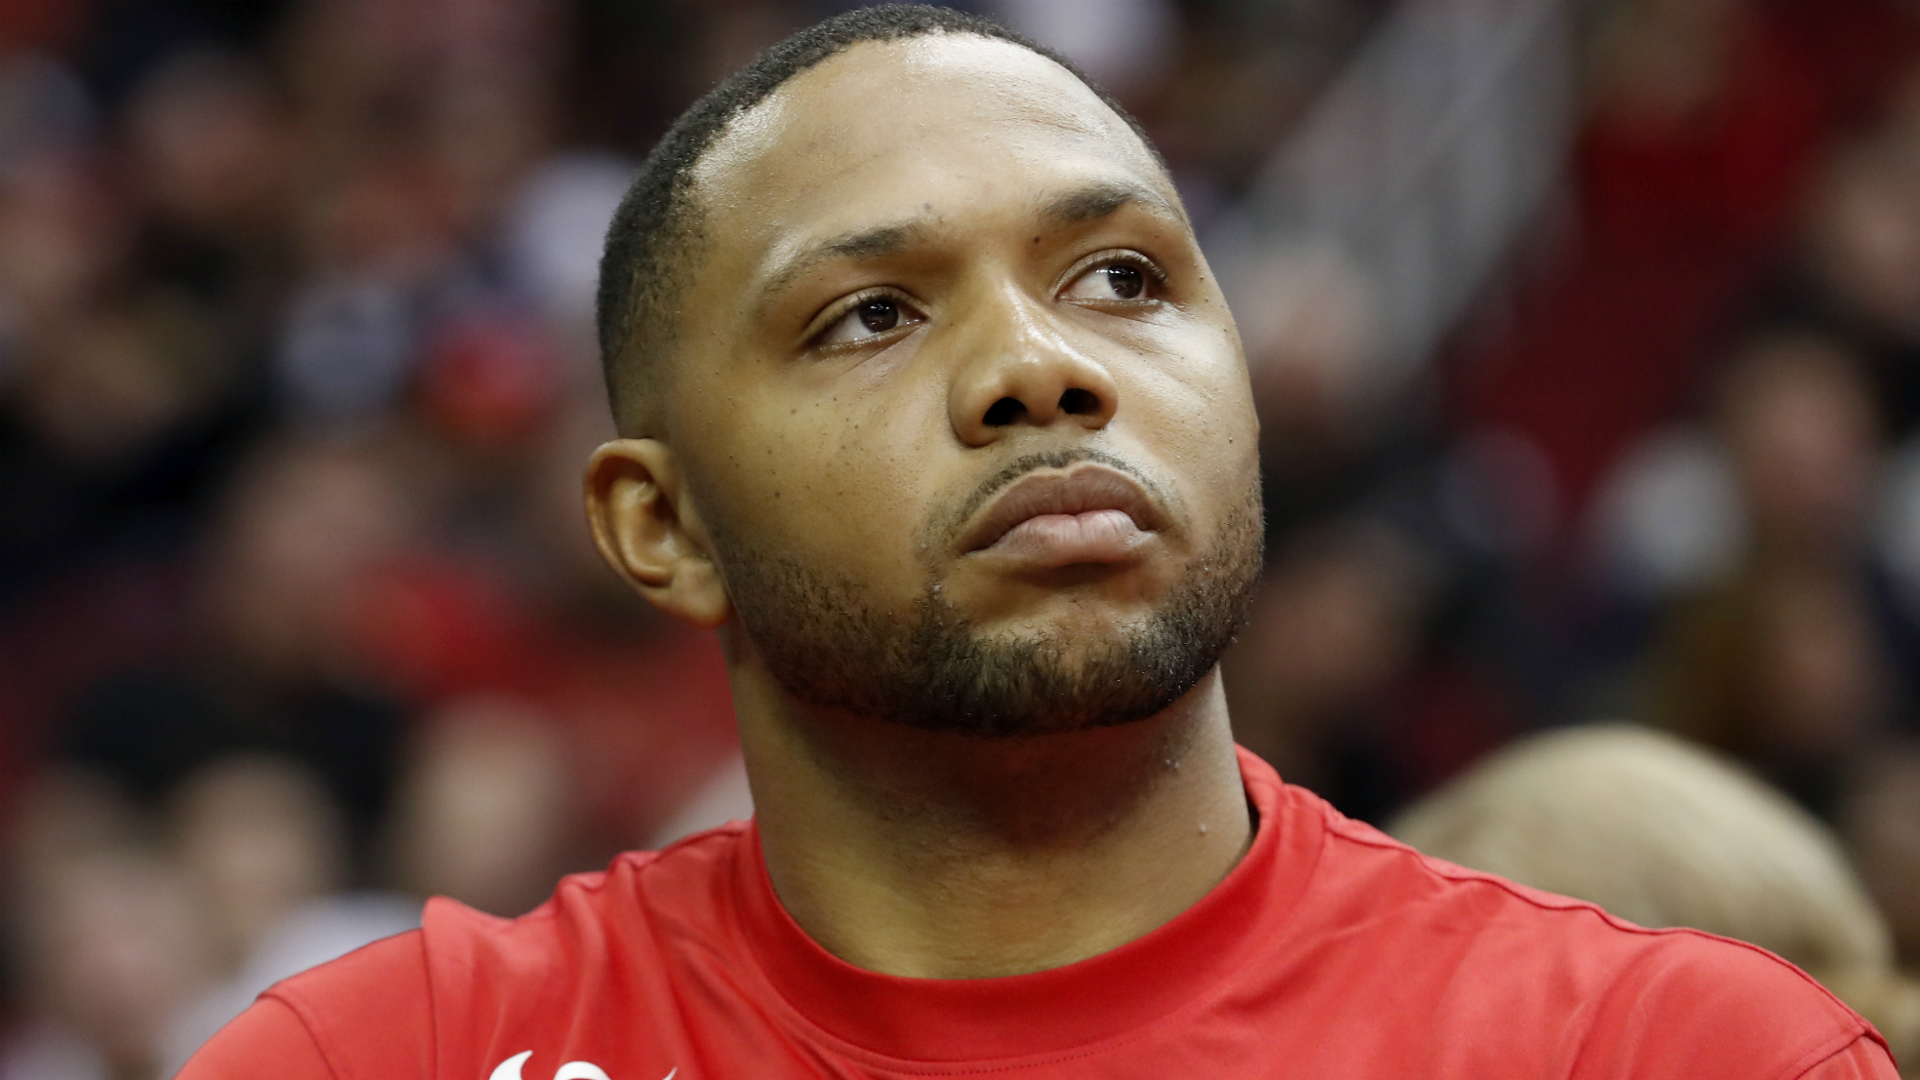 Rockets' Gordon to miss six weeks after knee surgery